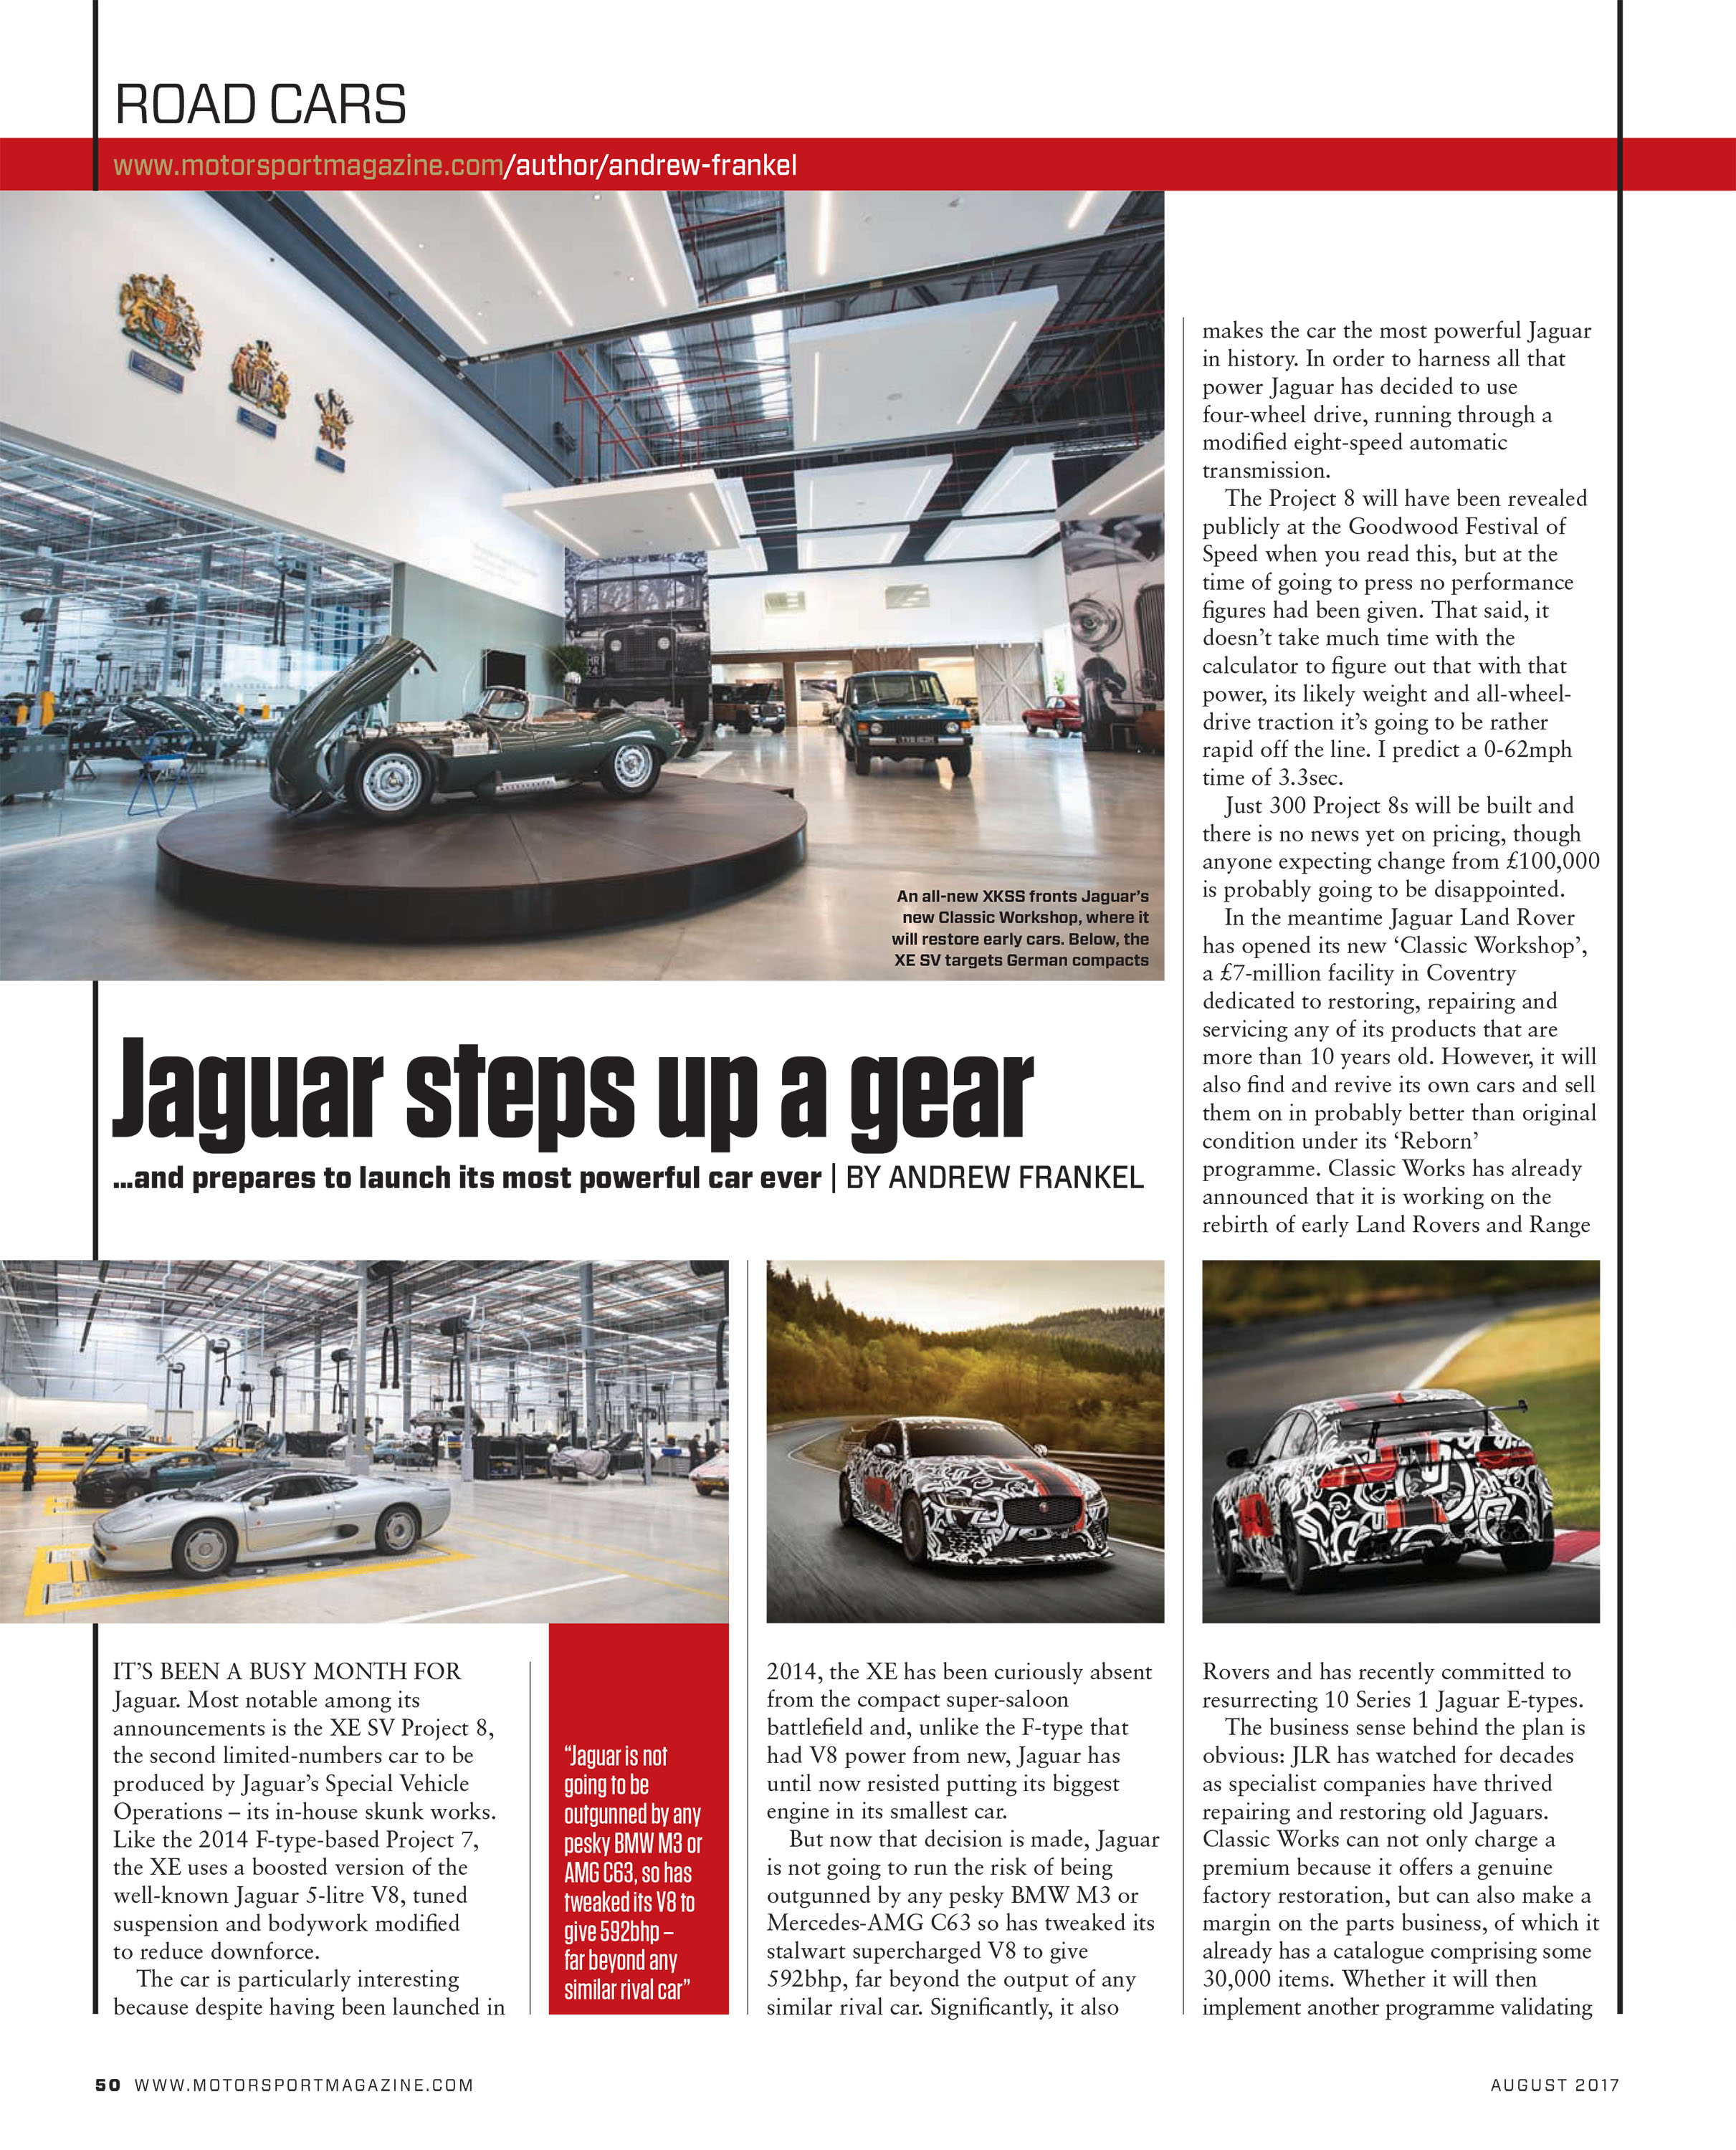 Road cars: Jaguar steps up a gear image